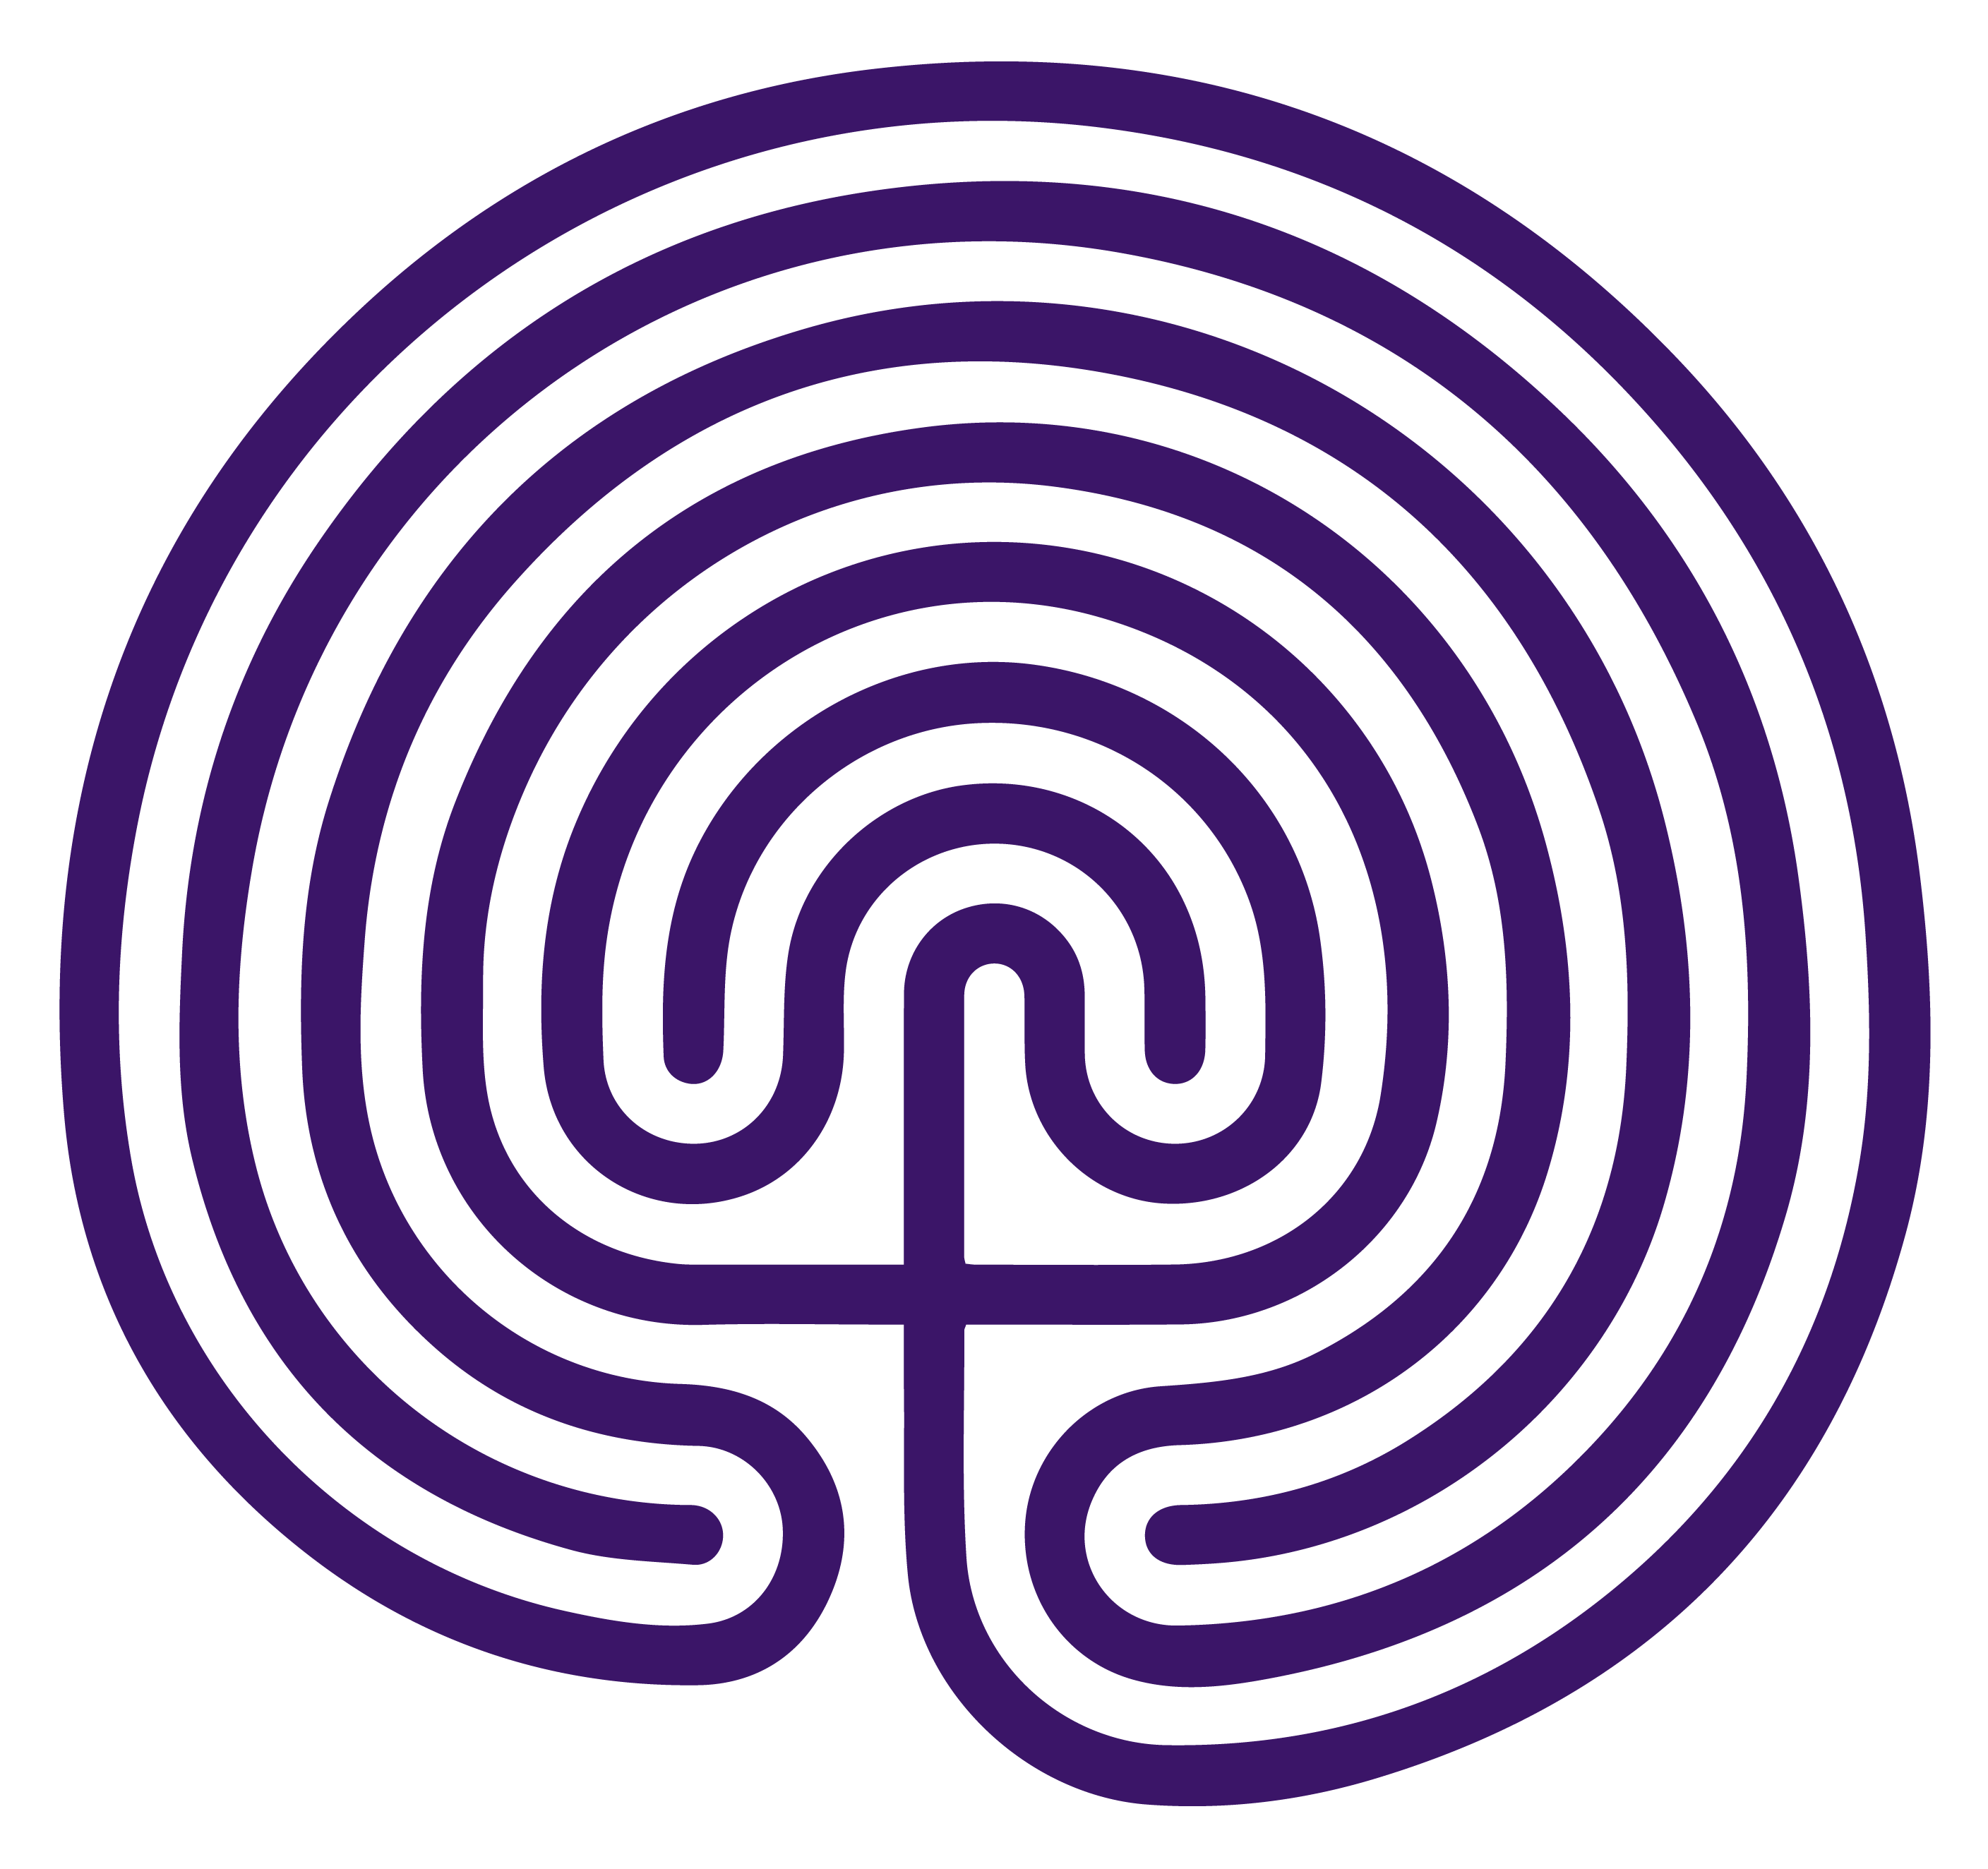 Pagan symbols and their meanings mythologian labyrinth biocorpaavc Choice Image